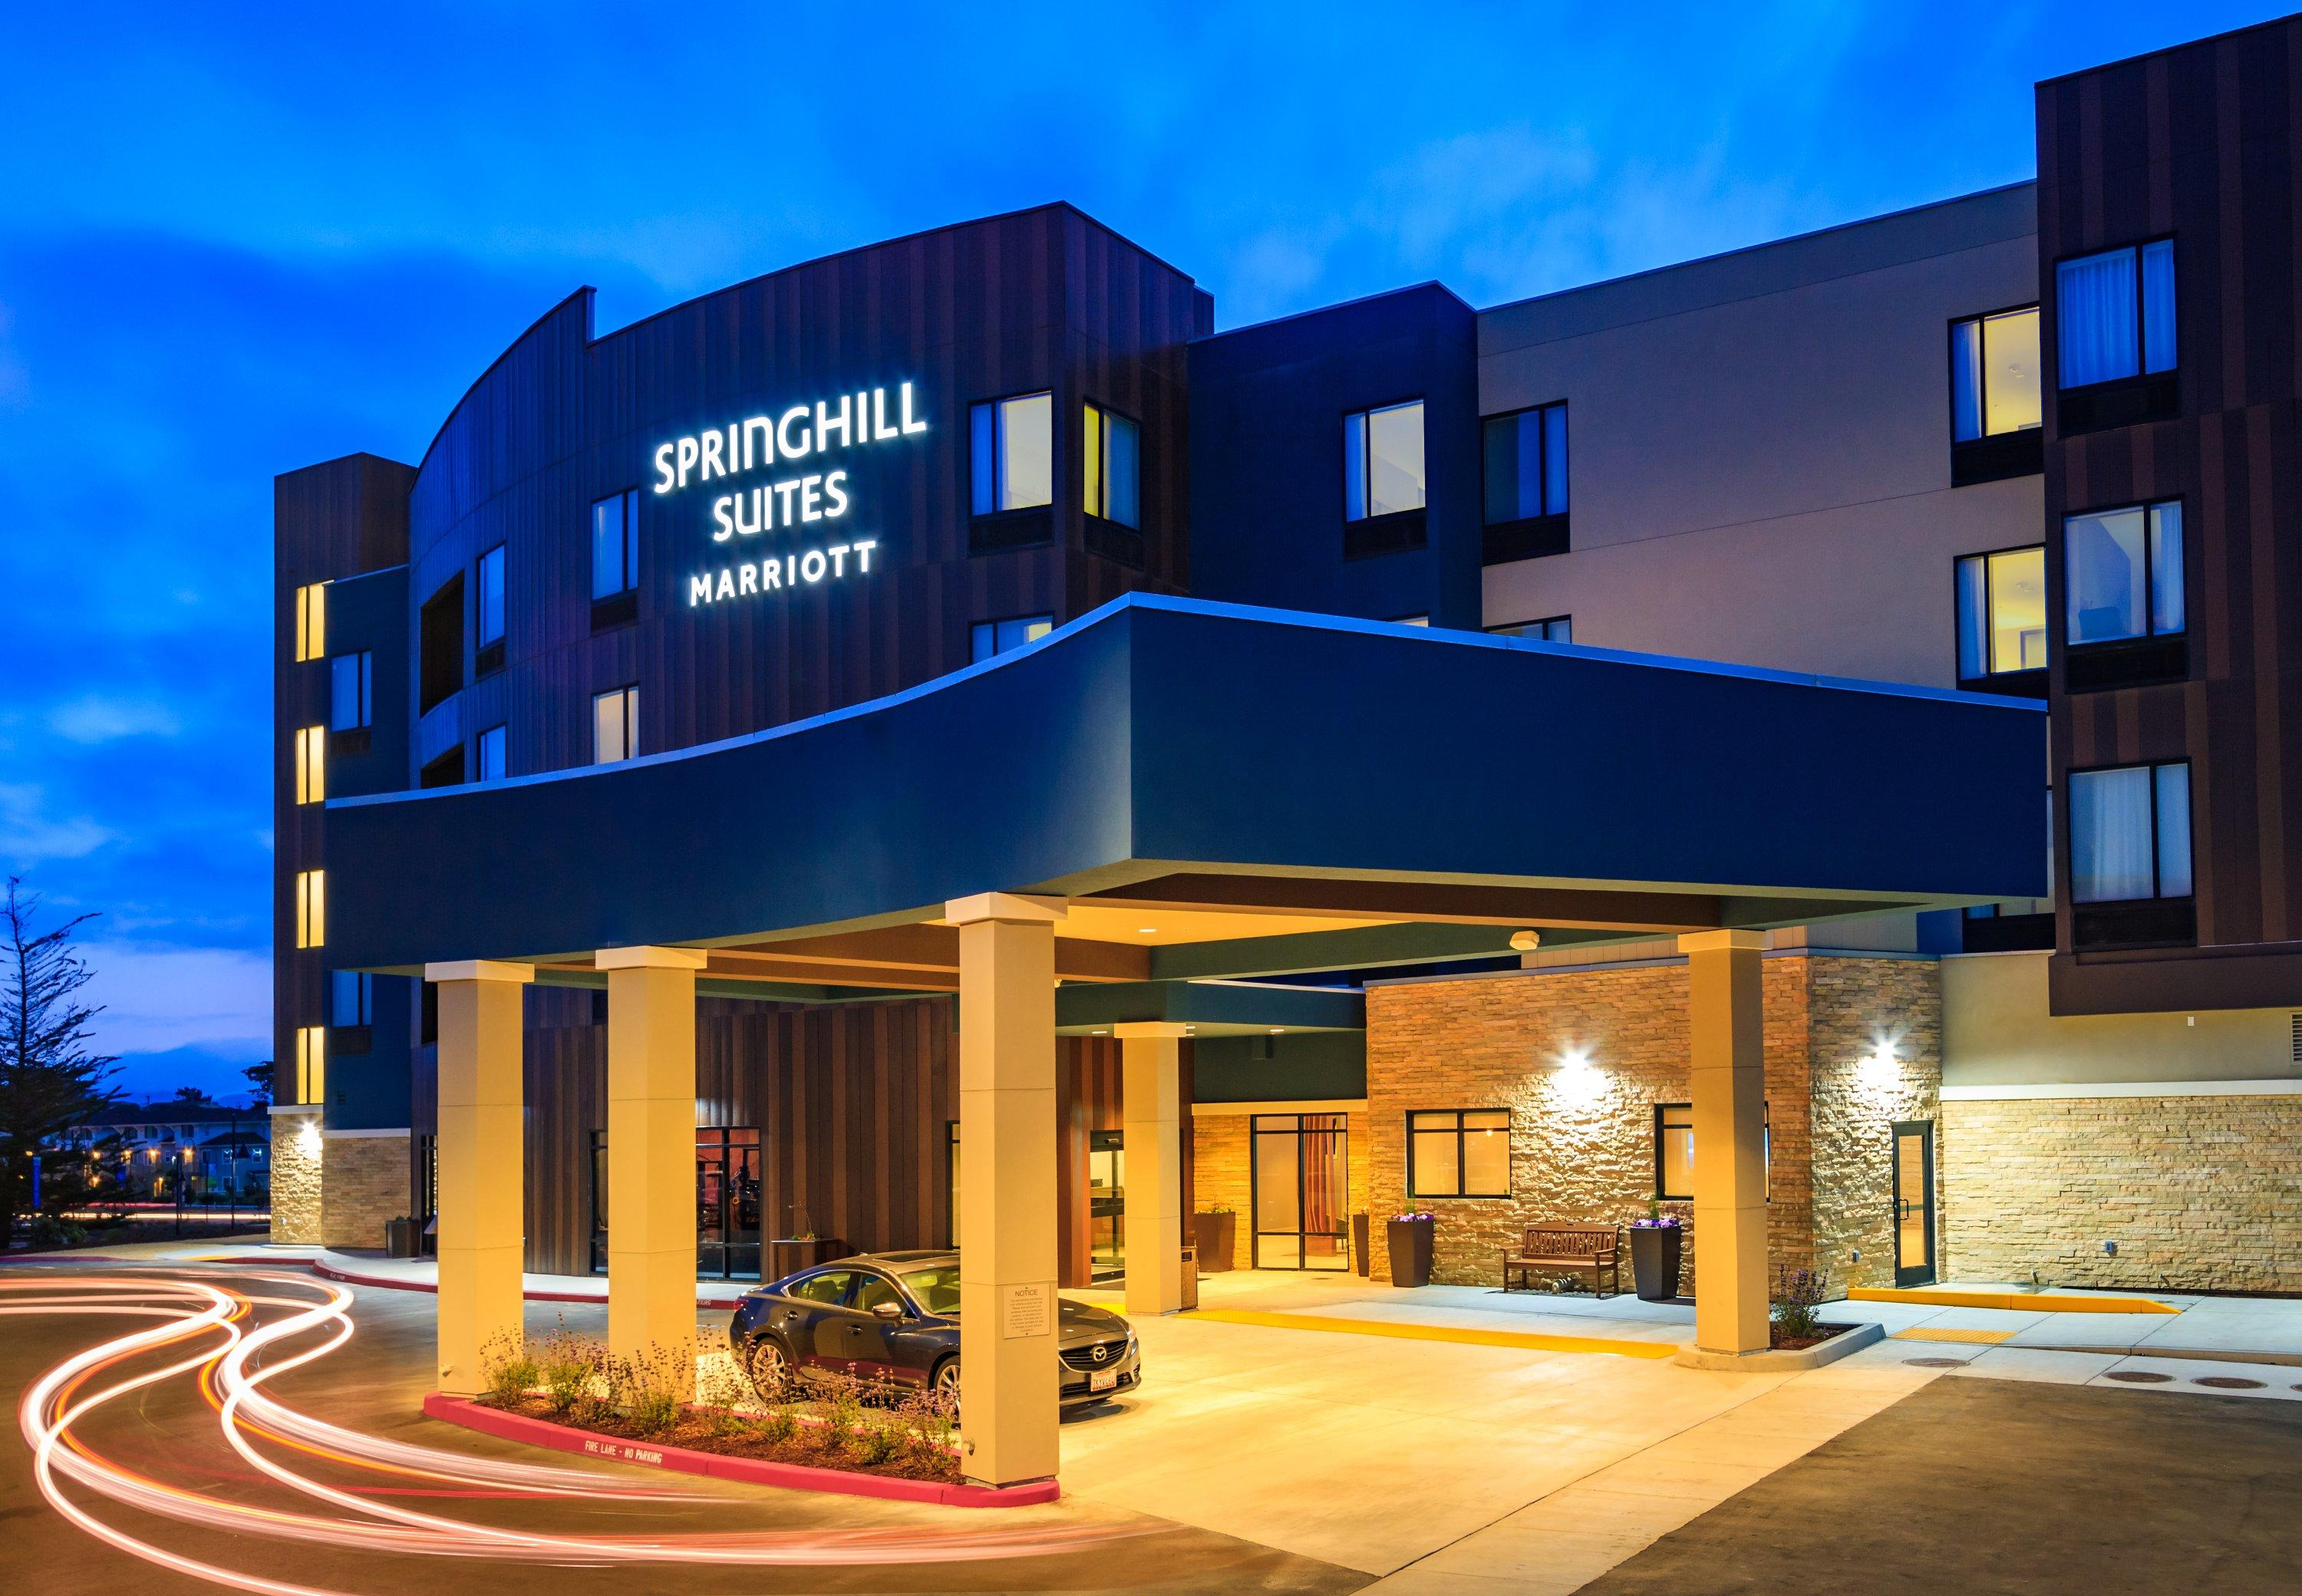 SpringHill Suites by Marriott The Dunes On Monterey Bay - Marina, CA 93933 - (831)718-8540 | ShowMeLocal.com